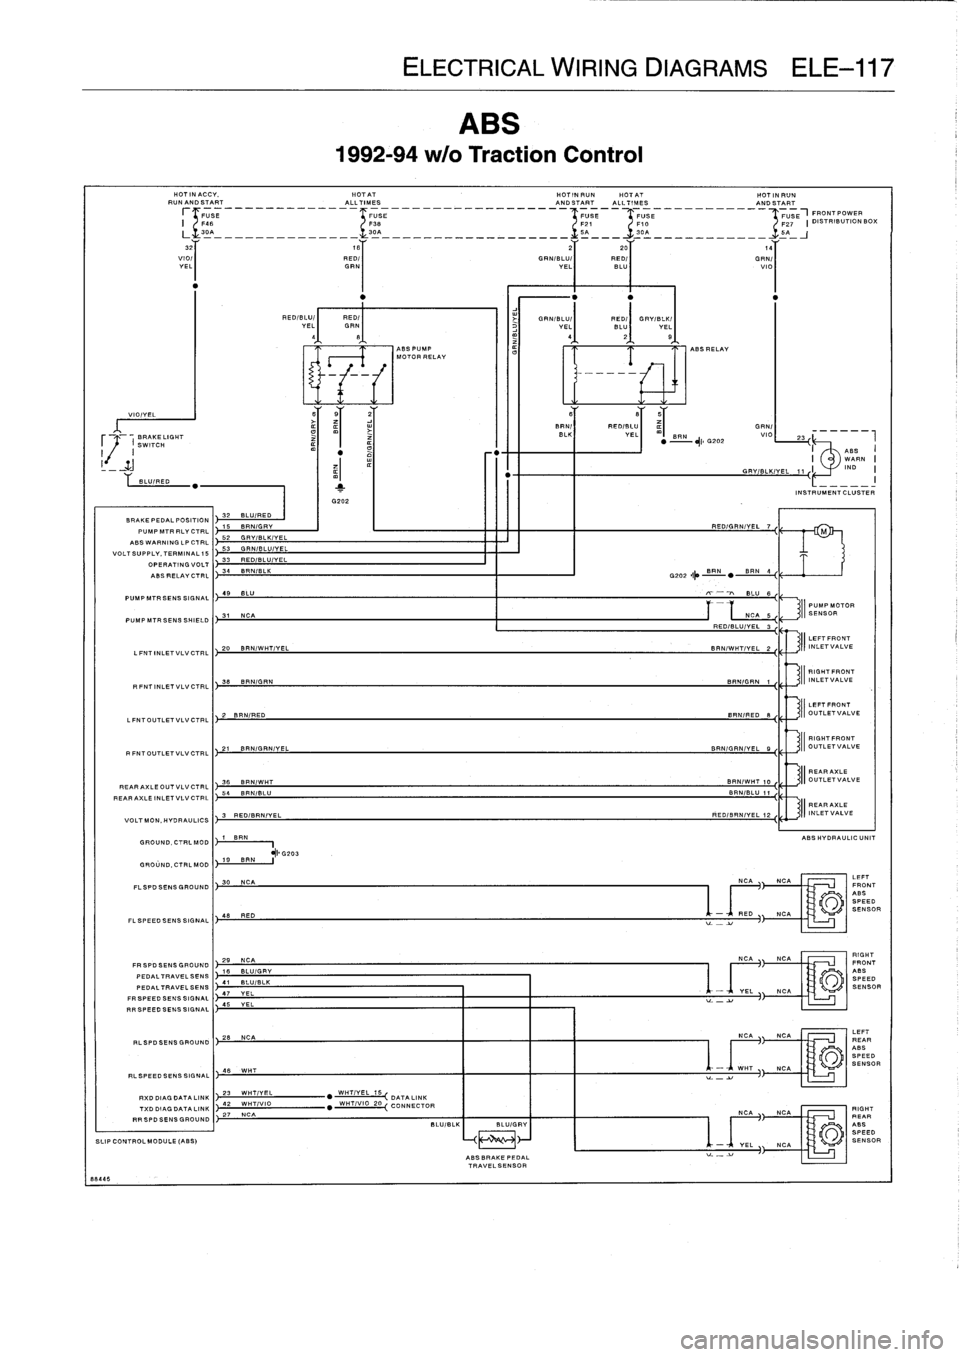 bmw e36 radio wiring diagram e36 abs wiring diagram #1